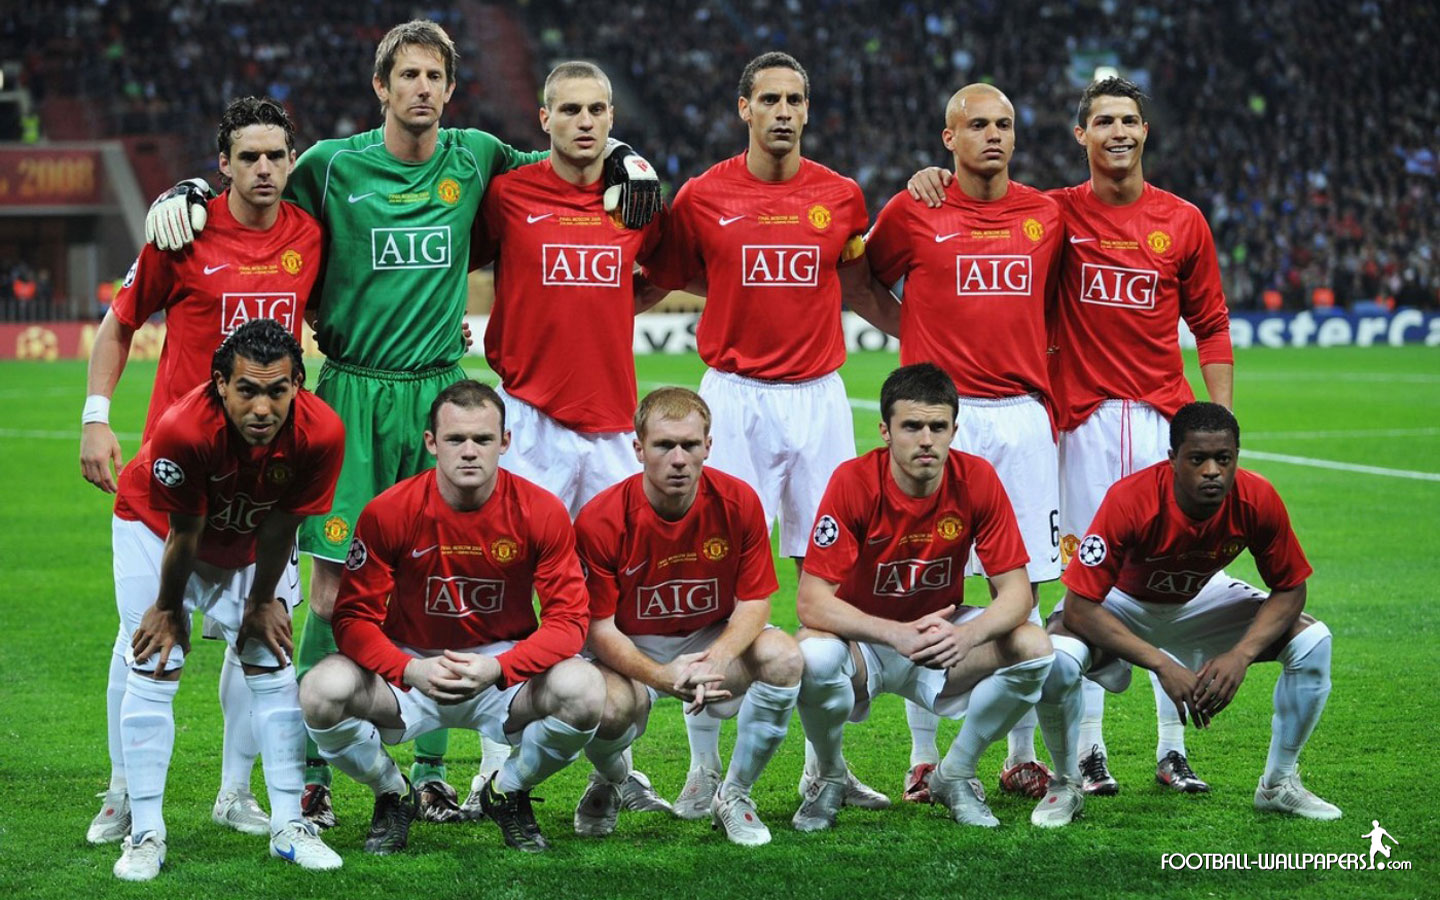 Sports and Players: Manchester United Football Club